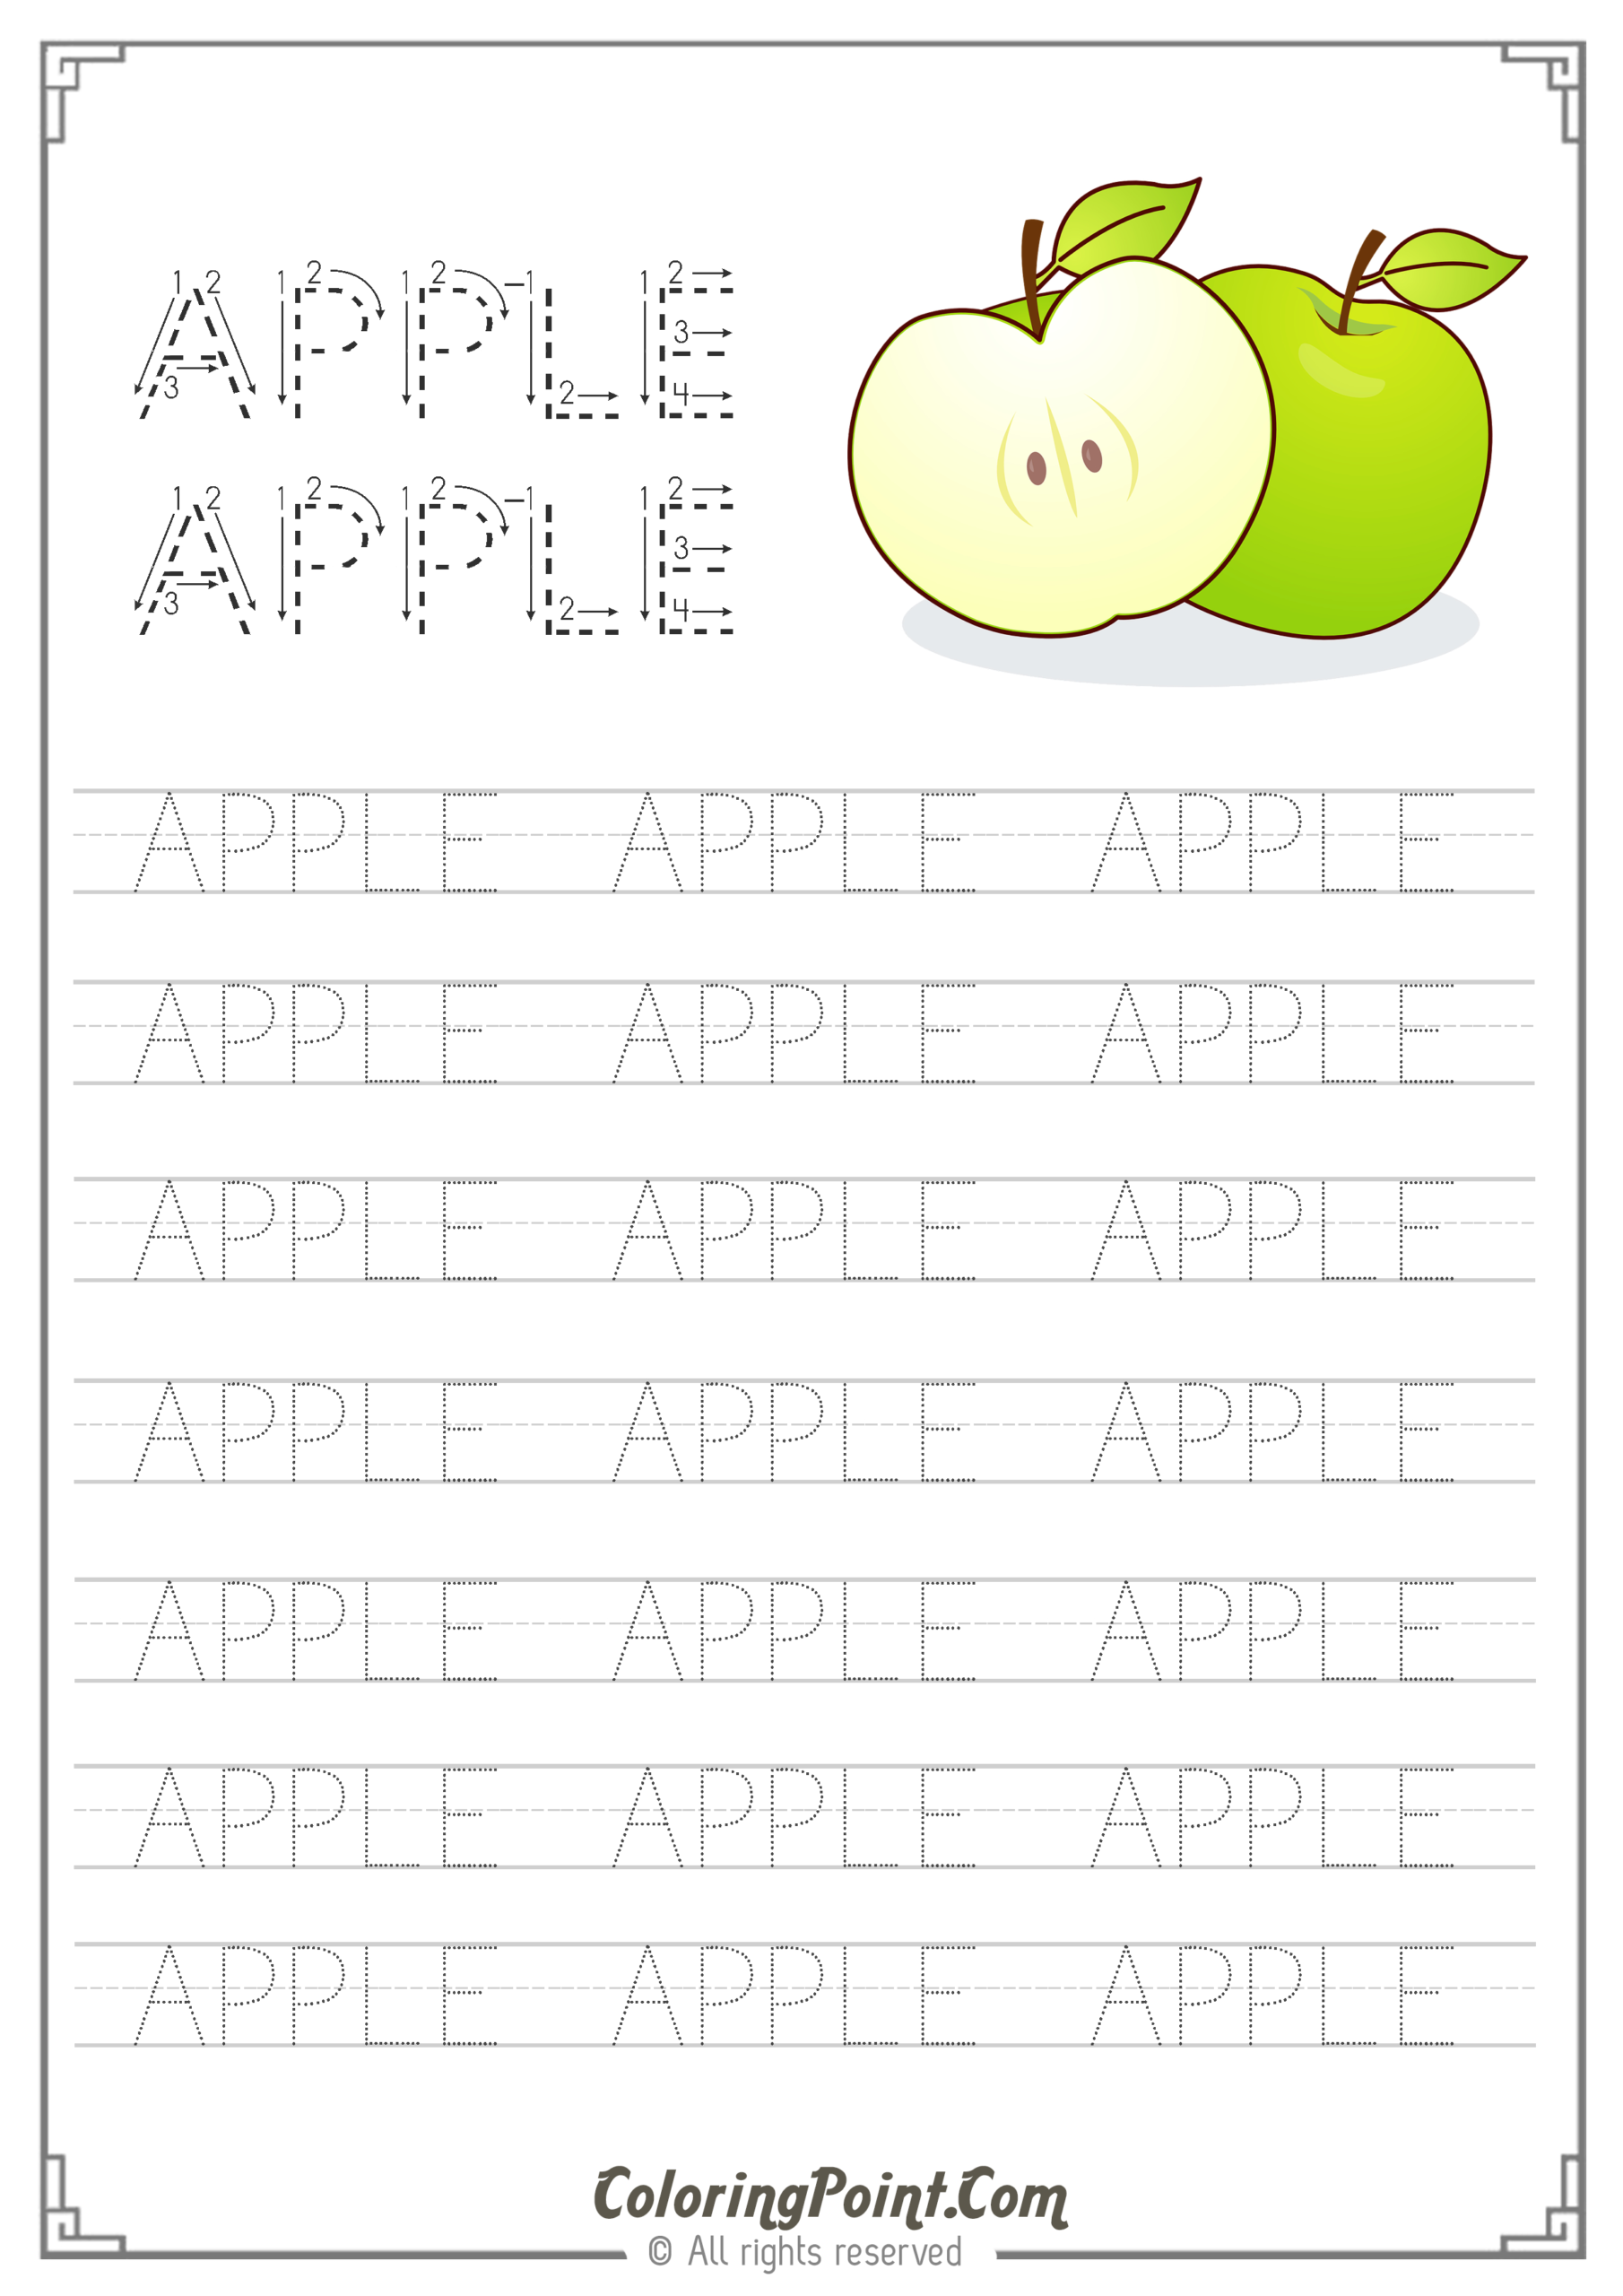 Apple Word Tracing Worksheet | Tracing Worksheets, Name throughout Name Tracing Colored Lines